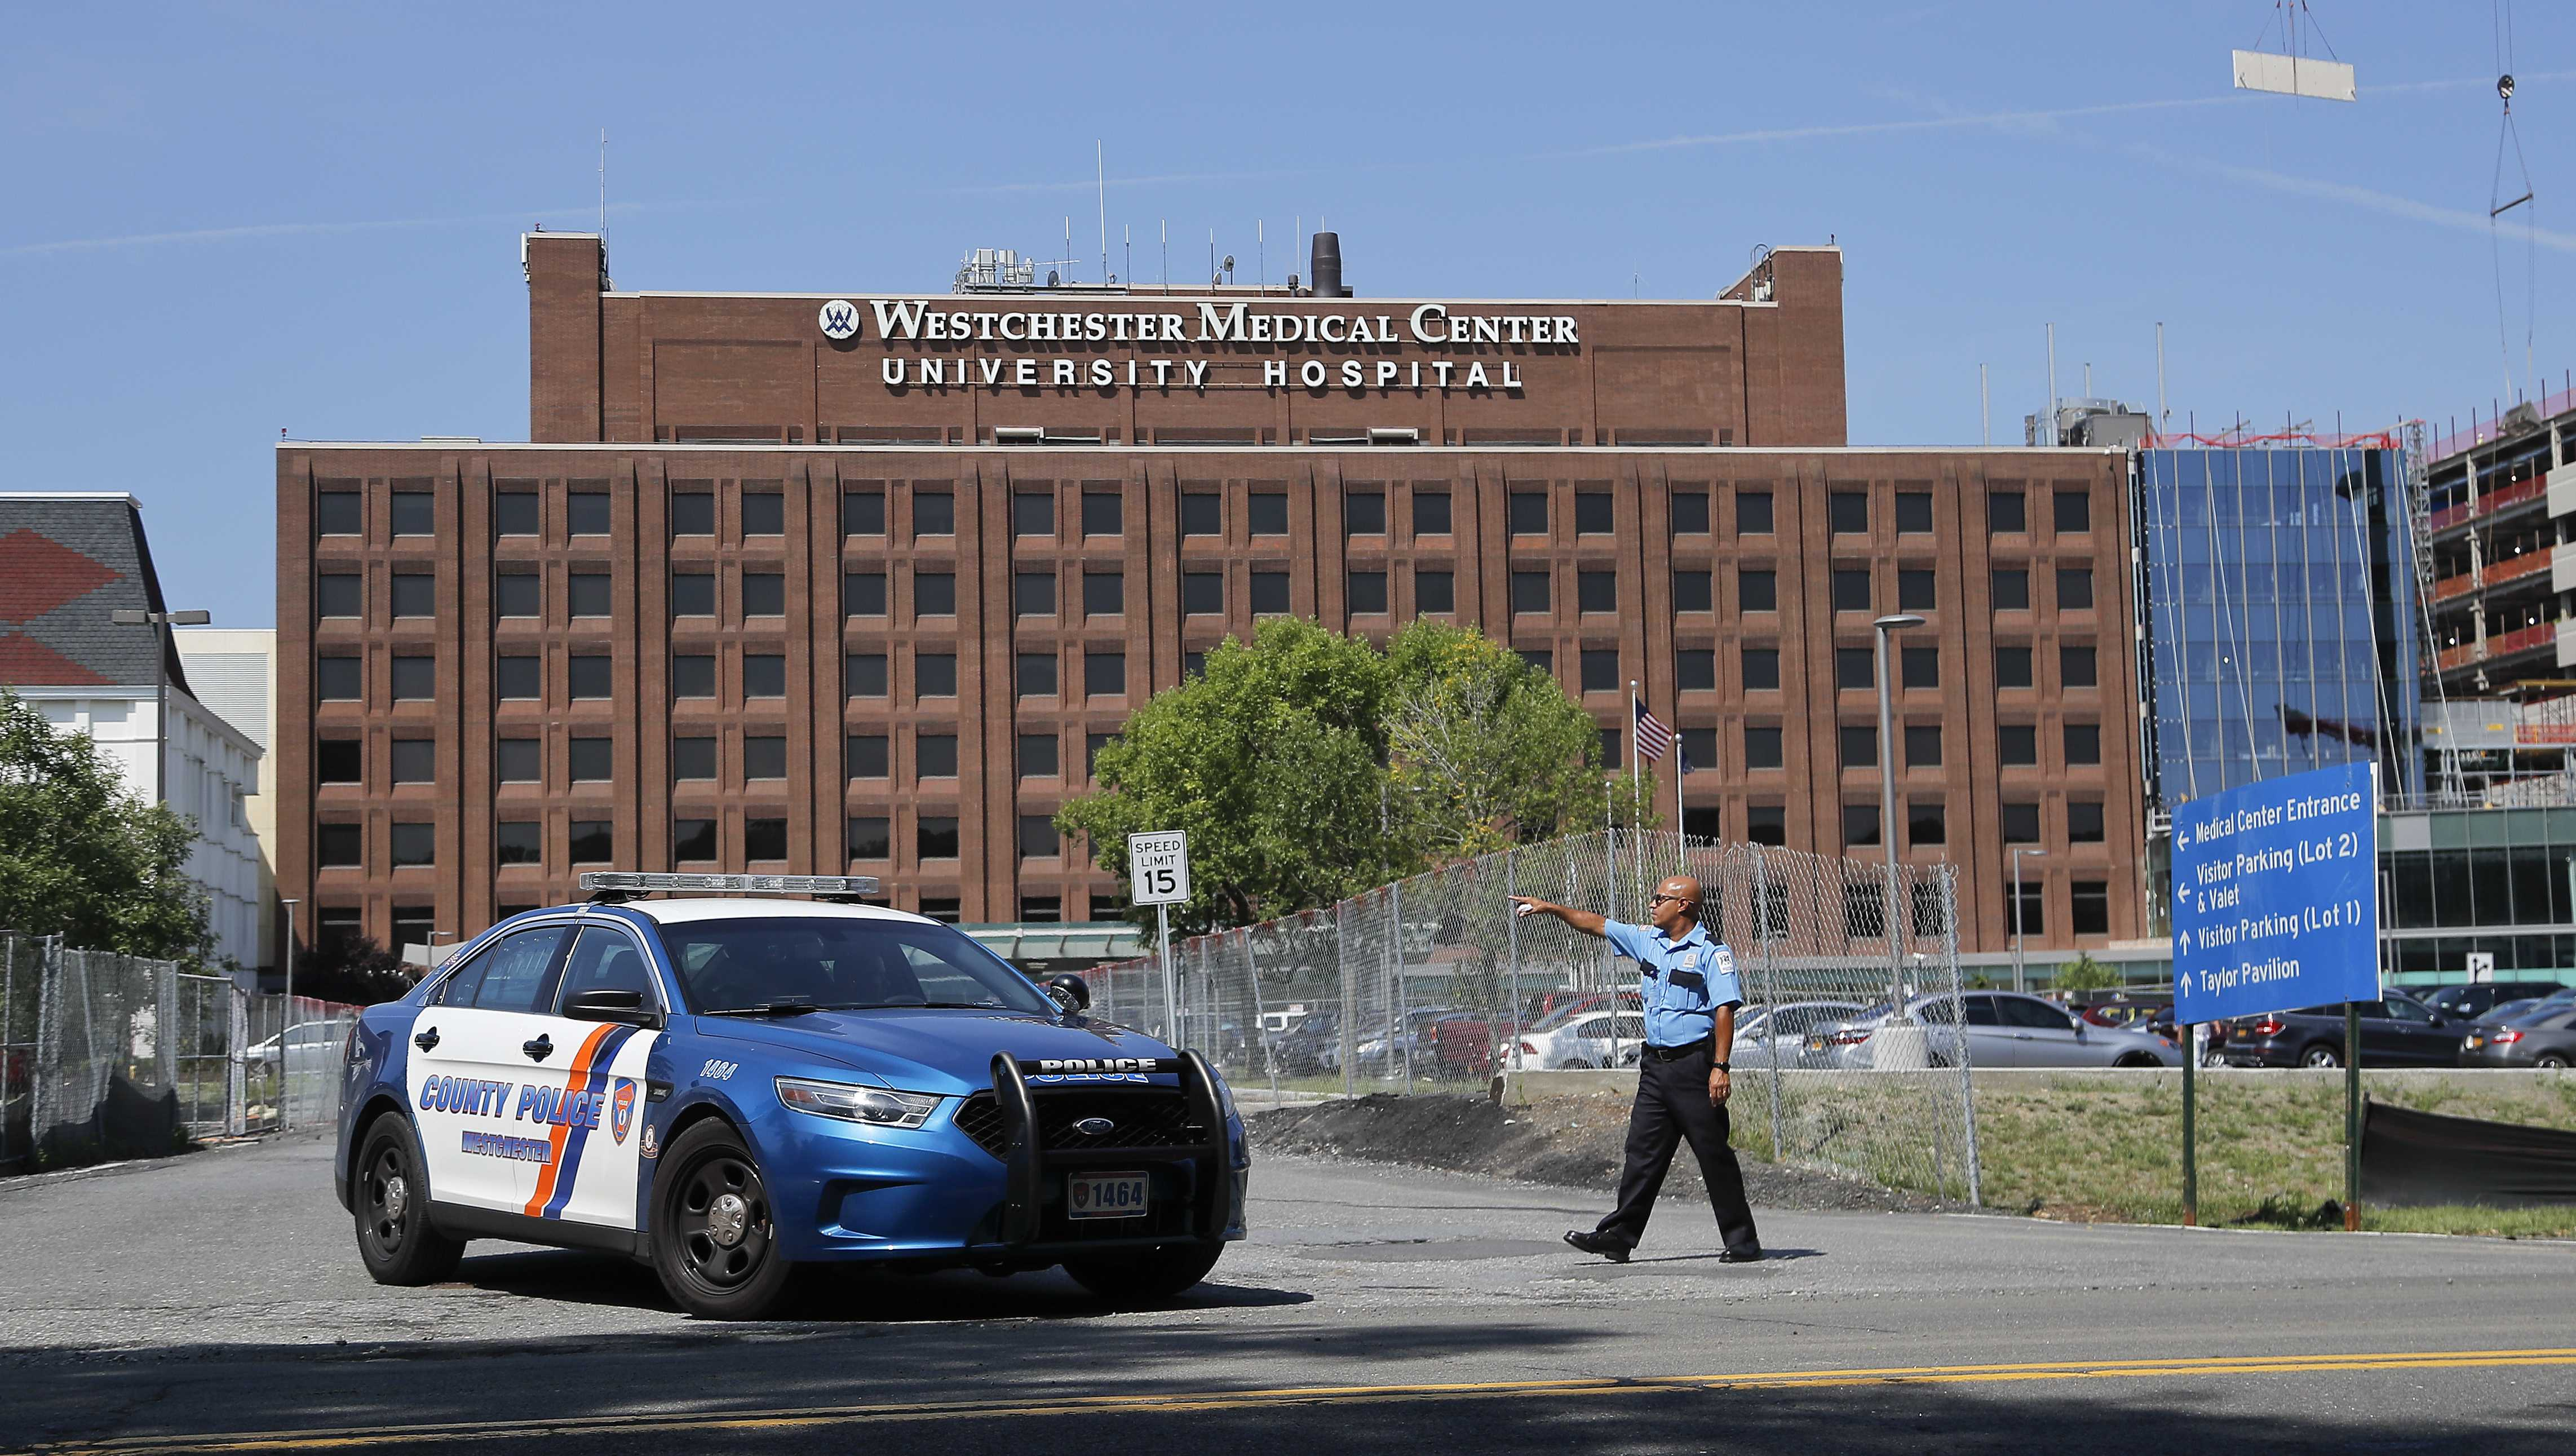 A Westchester Medical Center security guard directs traffic as a Westchester County police car pulls out of the drive to the main entrance of the hospital, Wednesday, Aug. 8, 2018, in Valhalla, N.Y. A man shot a female patient and then killed himself at the suburban New York hospital Wednesday, police said.